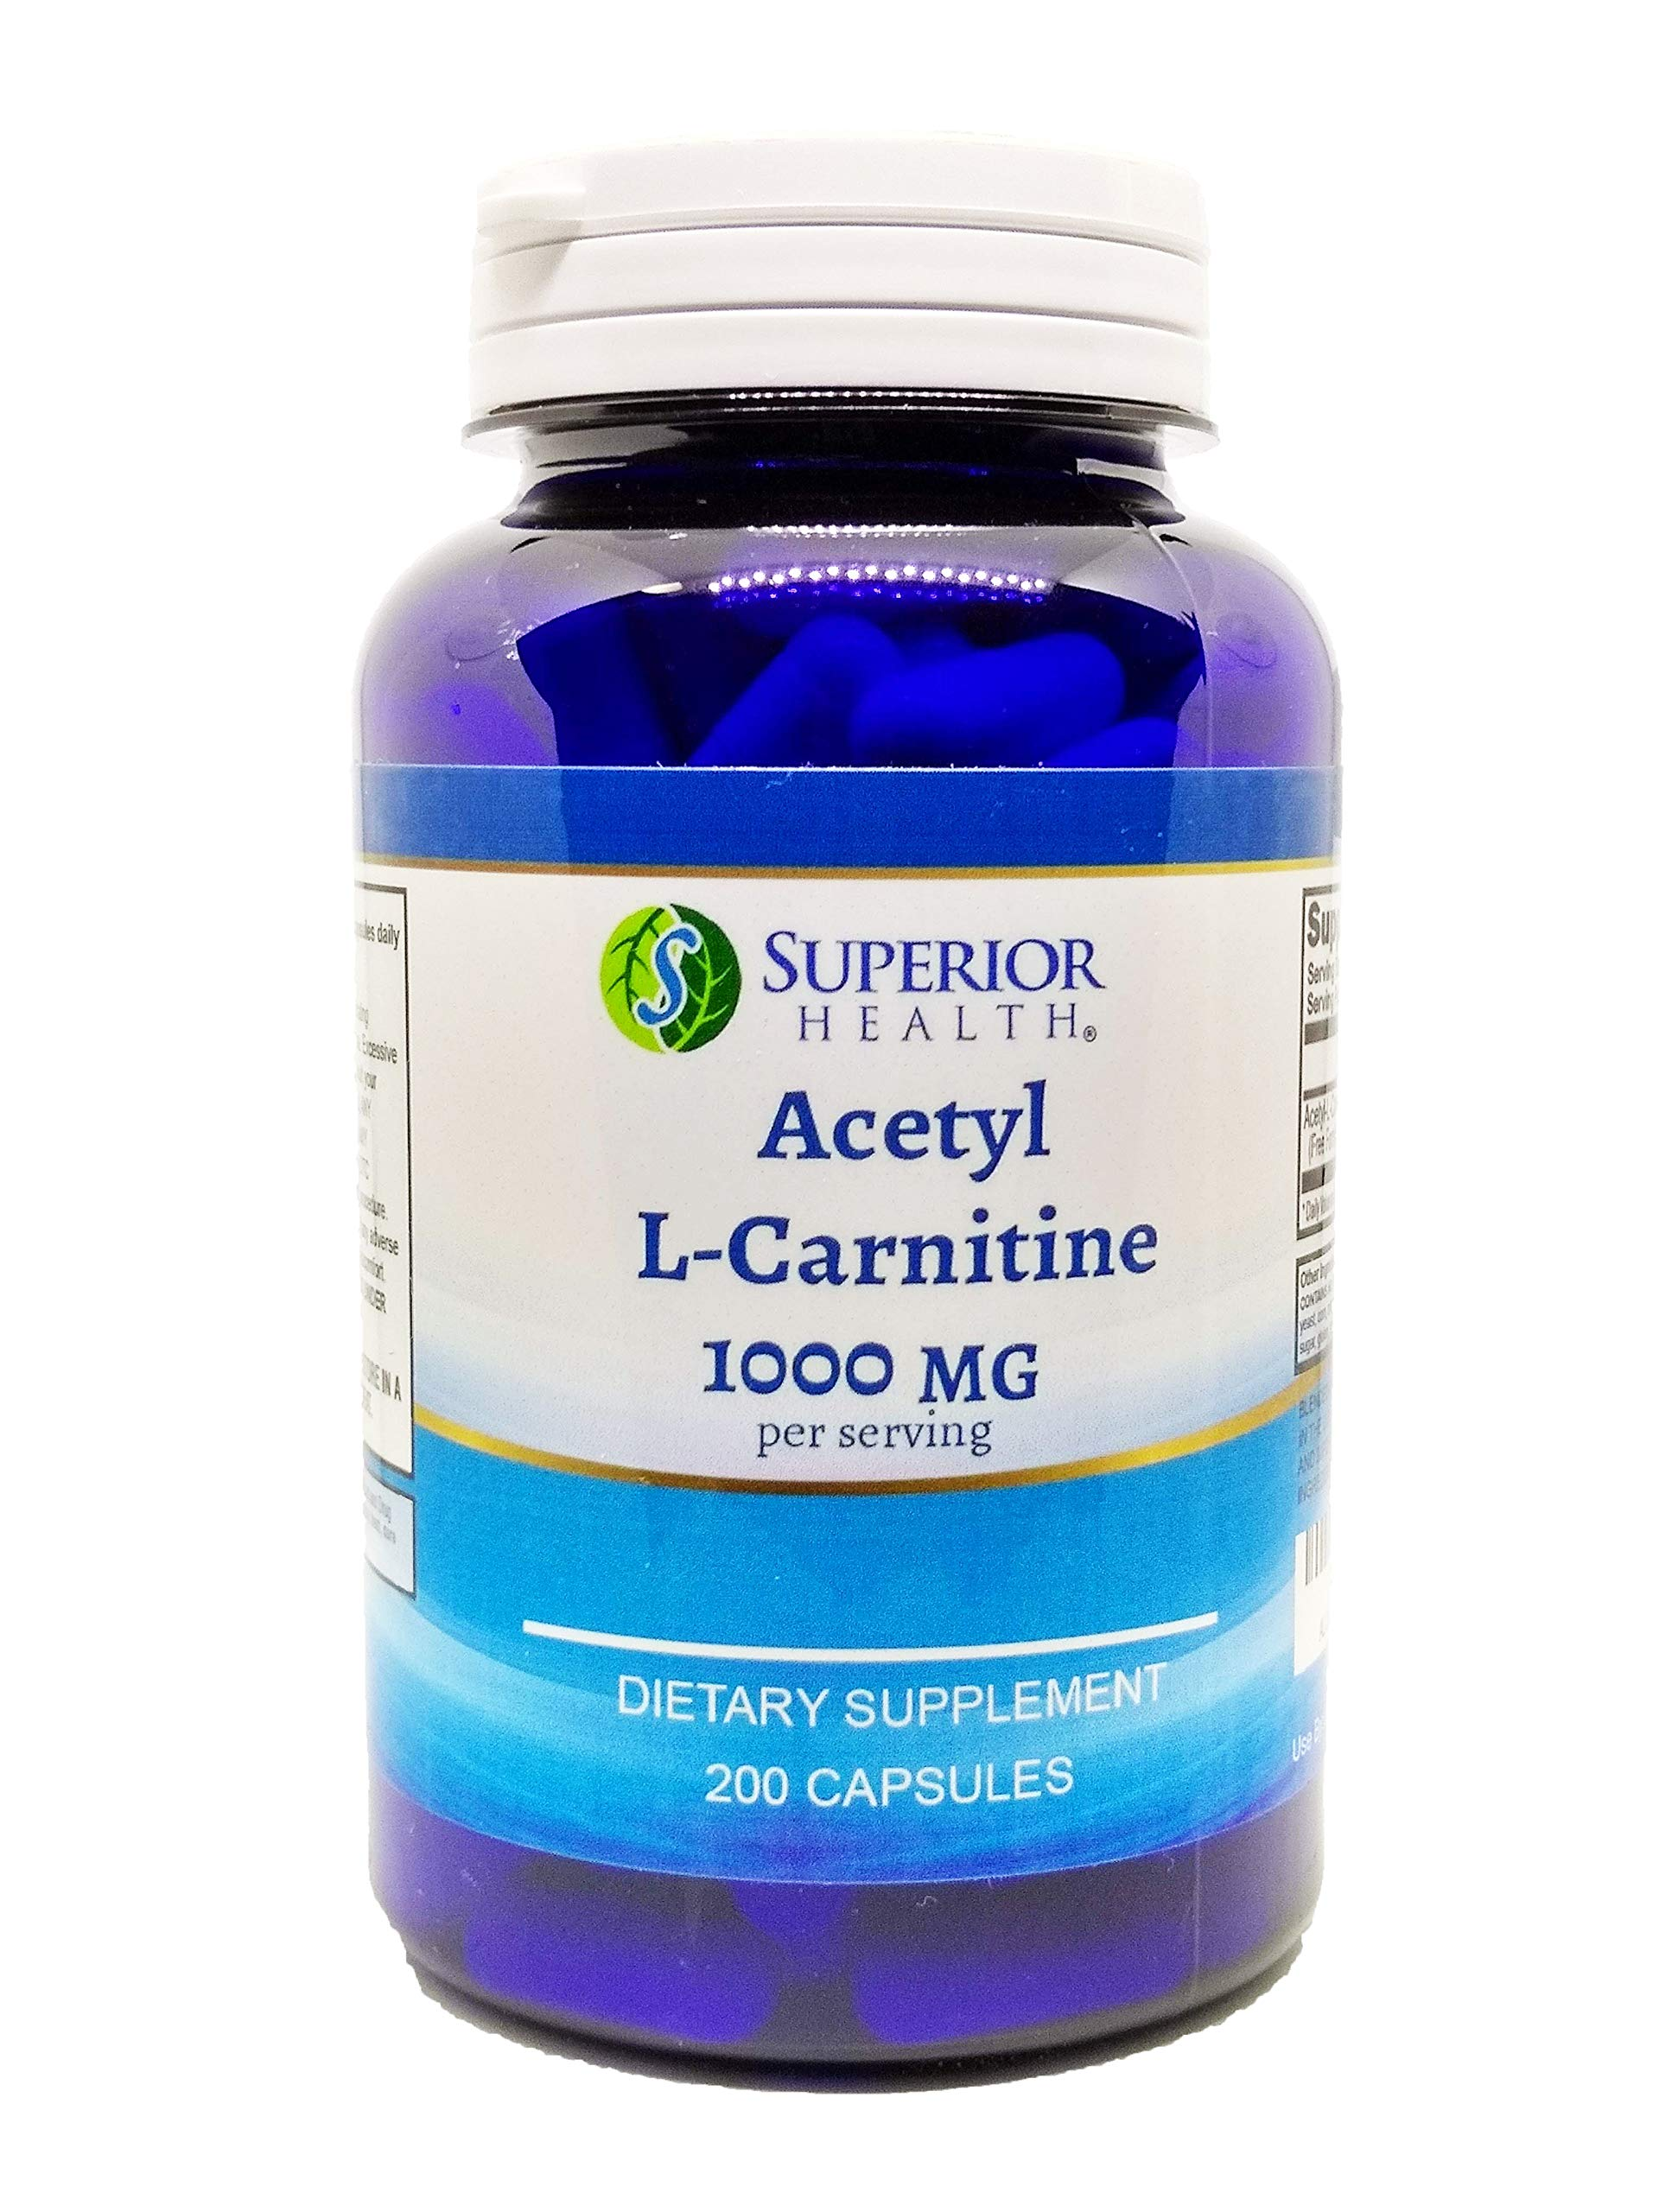 Acetyl L-Carnitine 1000mg 200 Capsules (ALCAR) by S SUPERIOR HEALTH (Image #1)